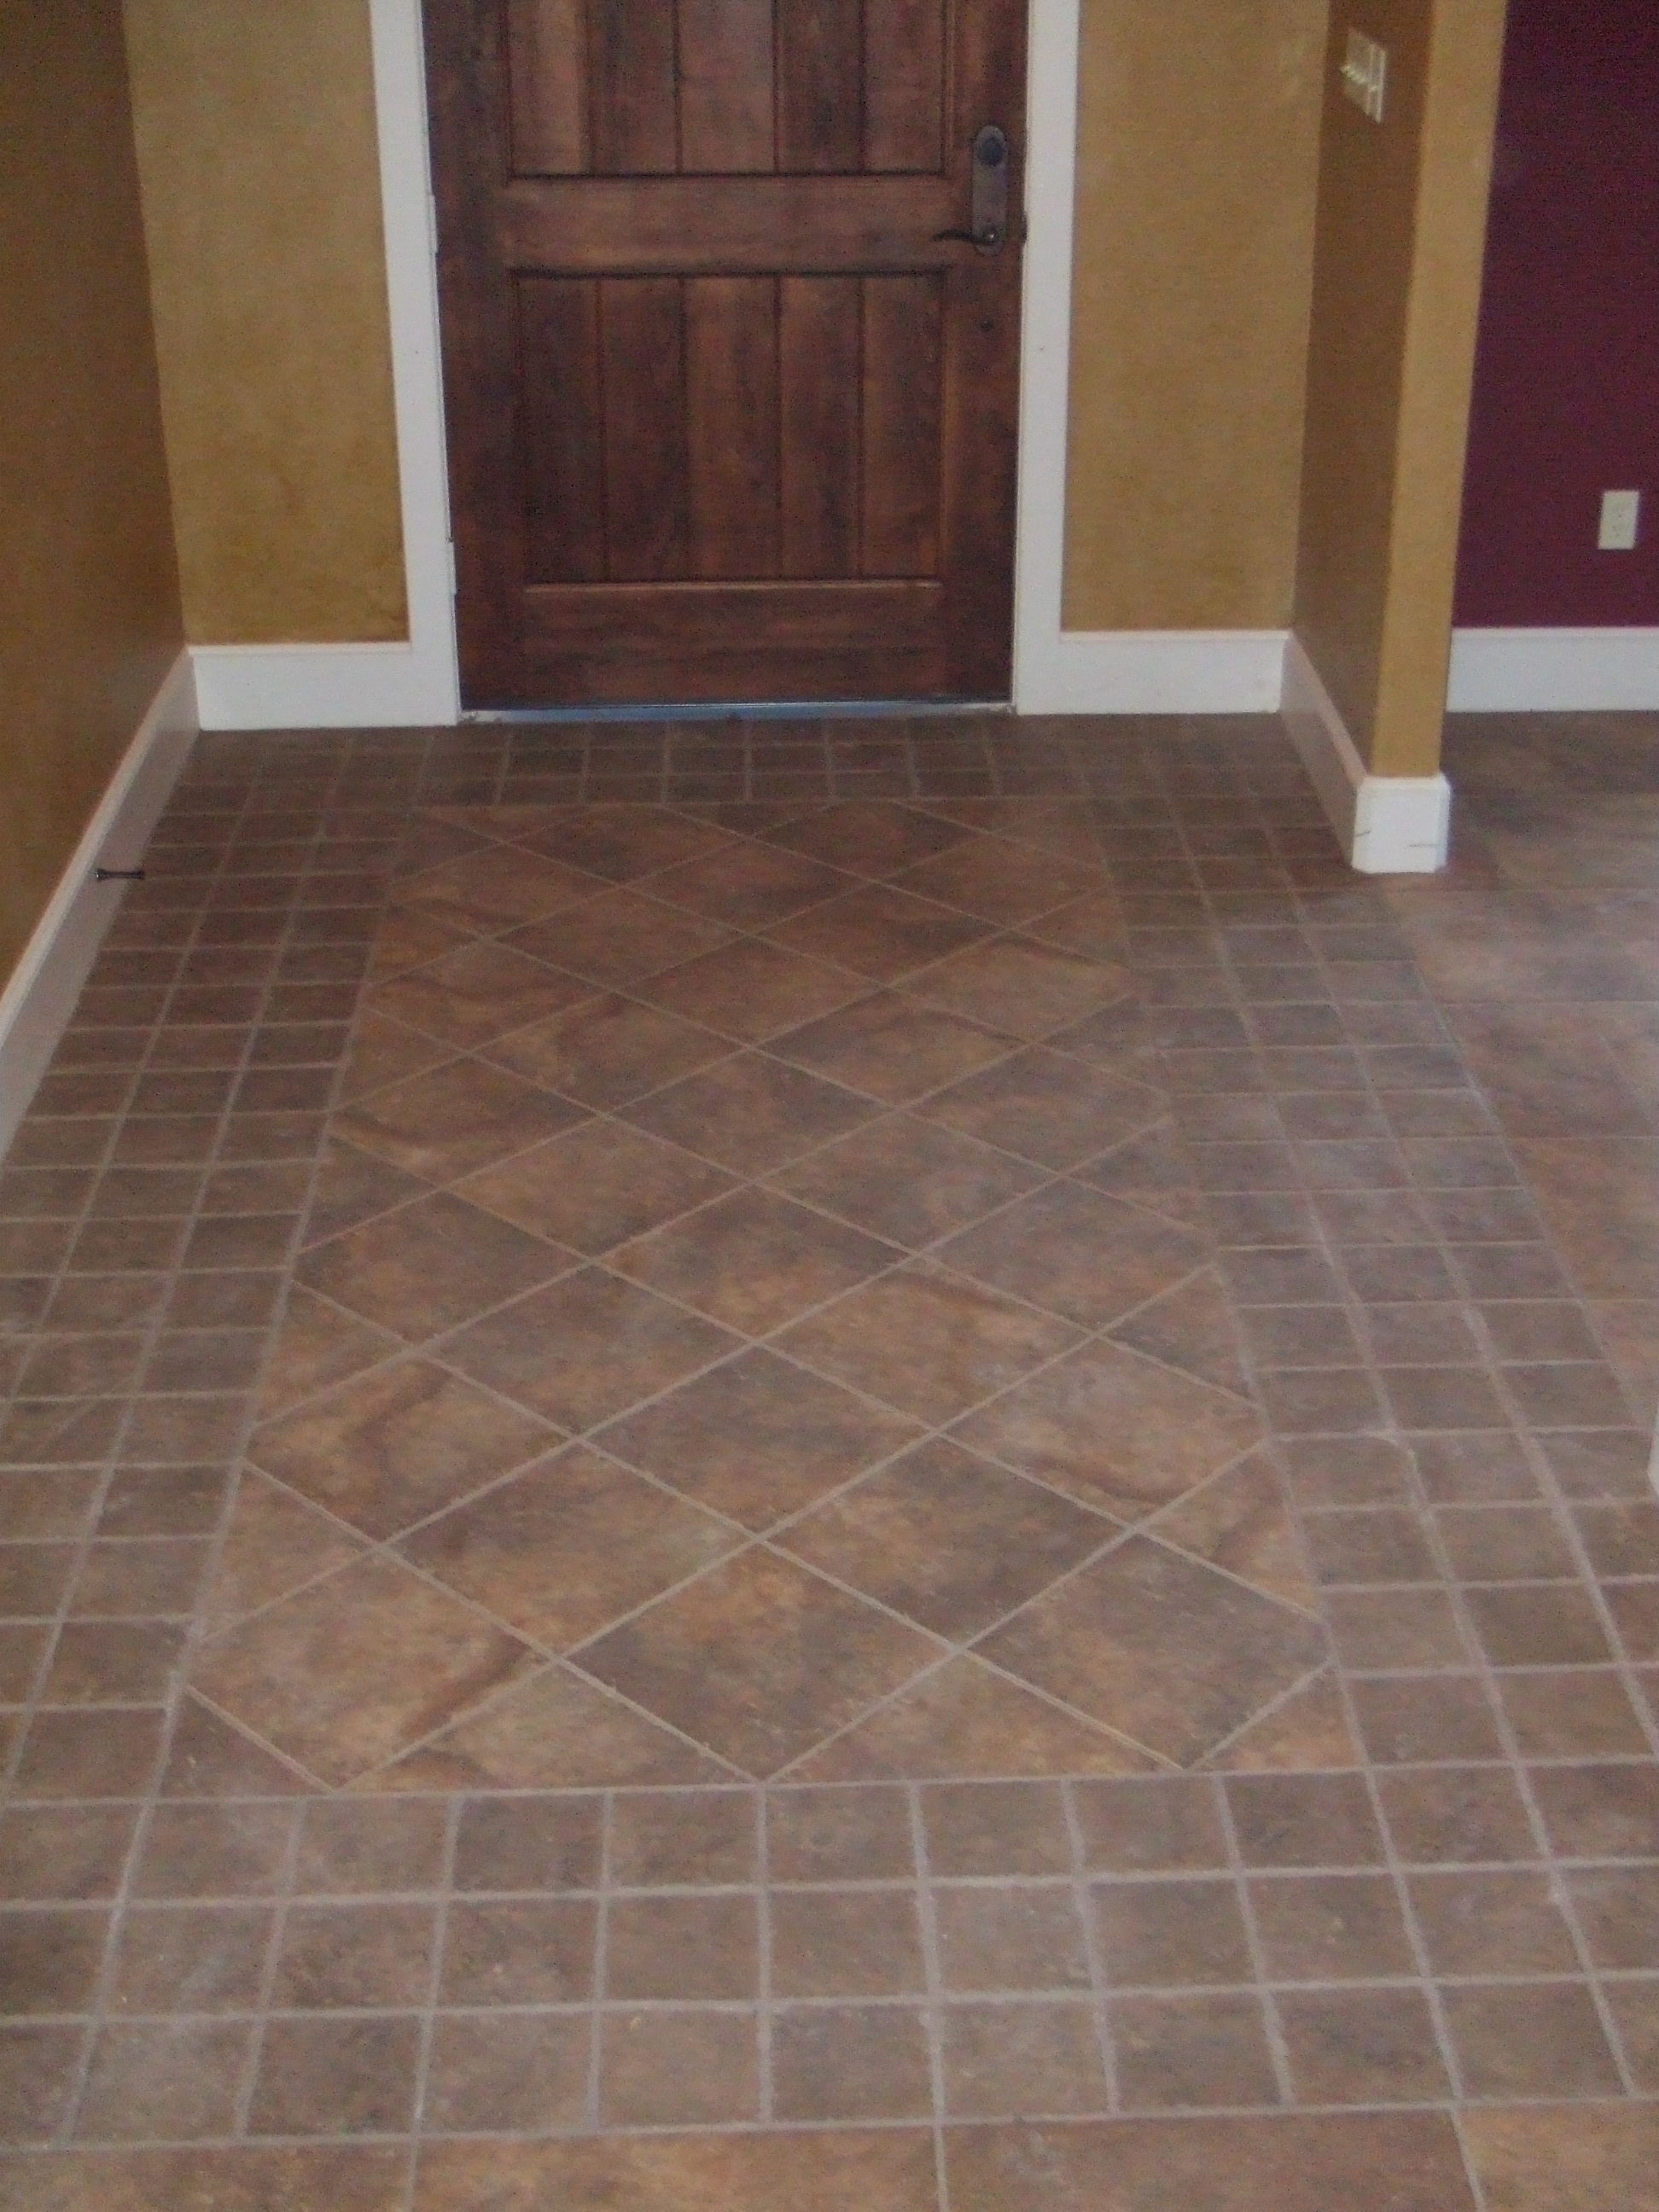 Entry border solaris nutmeg 12x12 faith floors more in college station tx for Bathroom remodeling college station tx